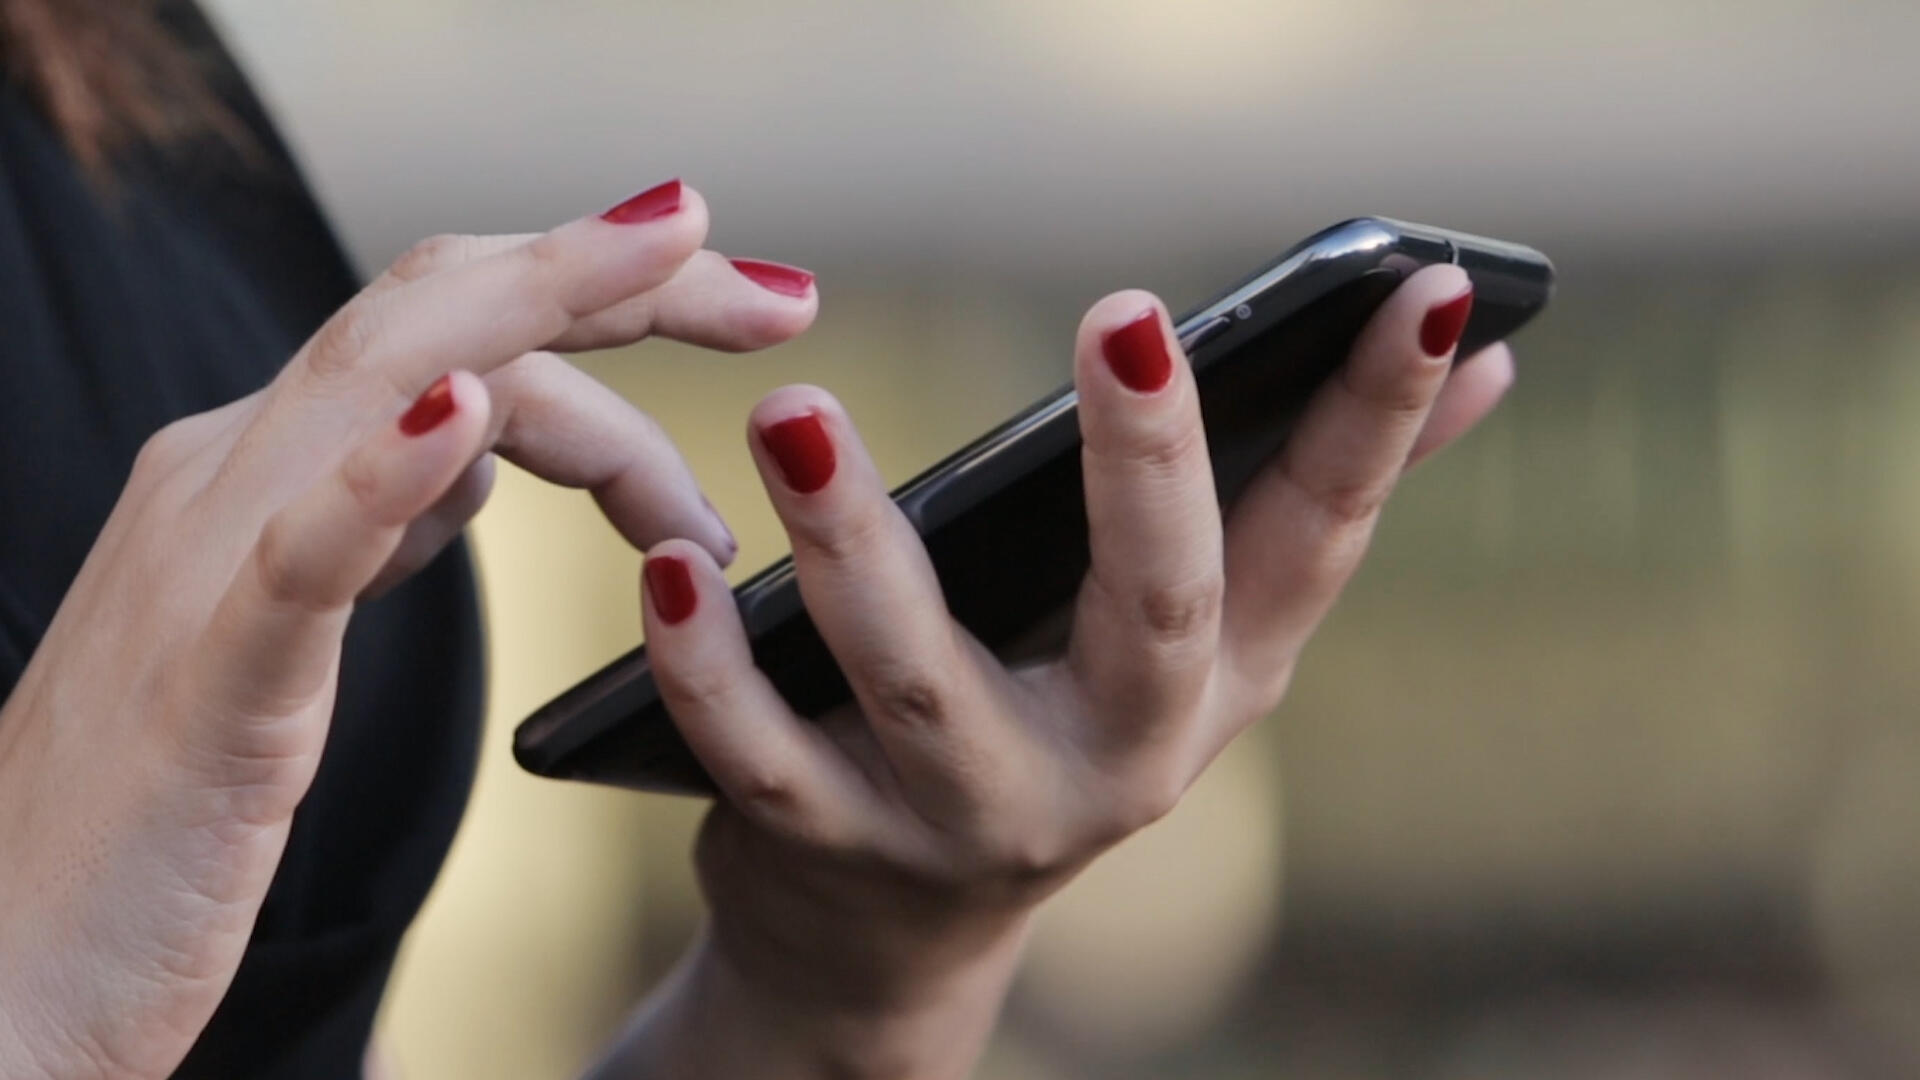 Video: Your phone might be a powerful tool to help stop the coronavirus